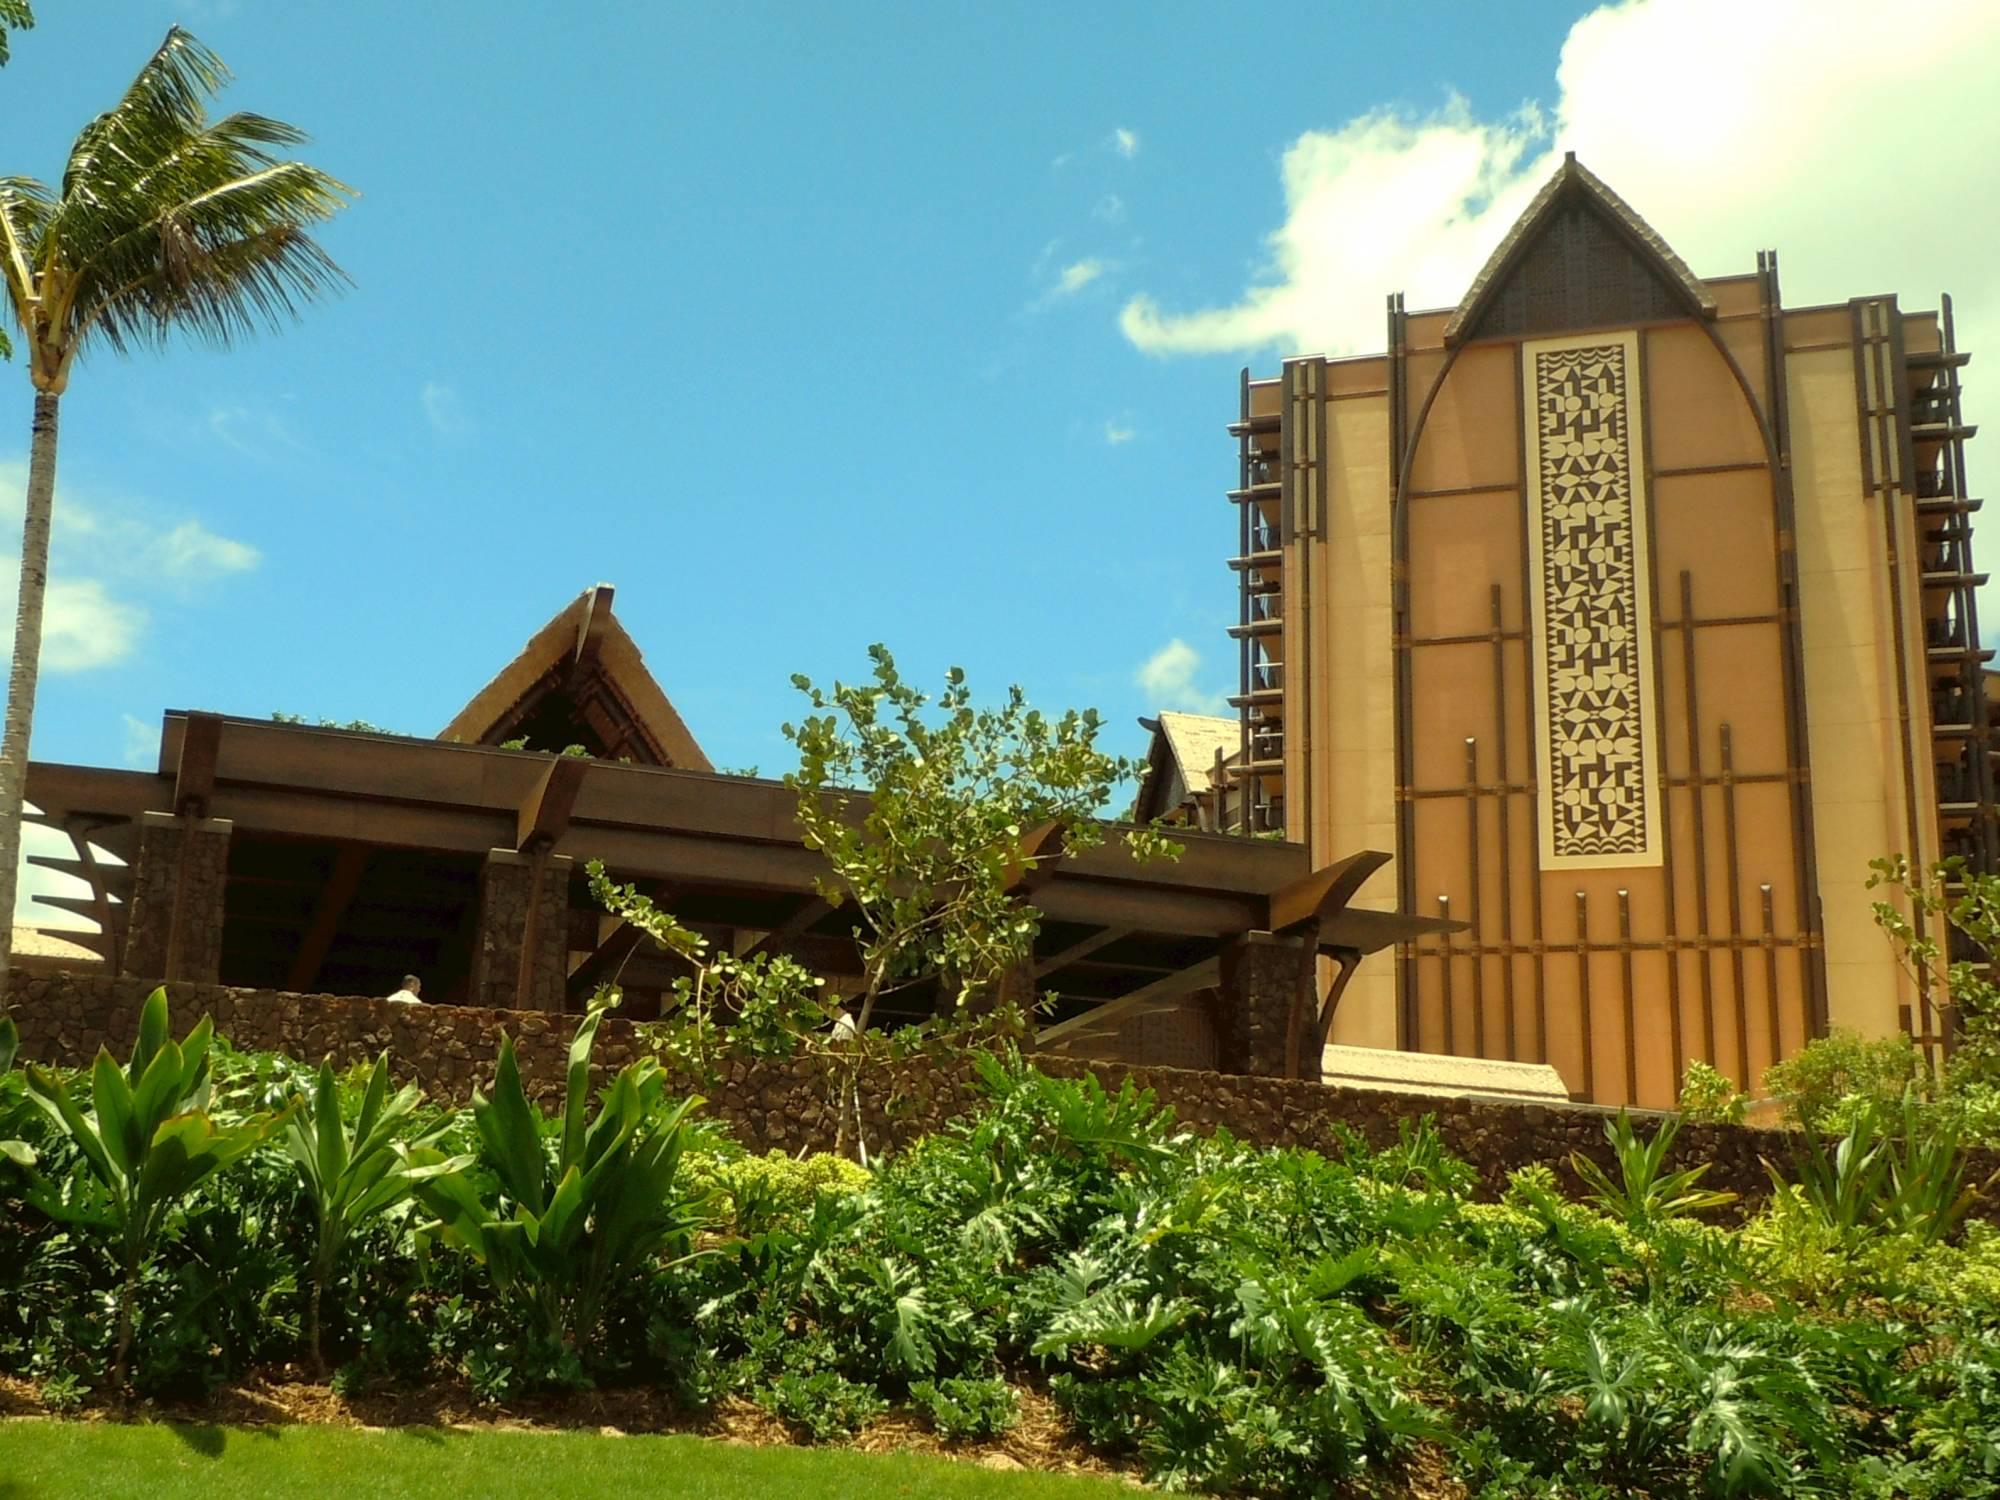 Discover the magic of Disney's newest resort, Aulani |PassPorter.com